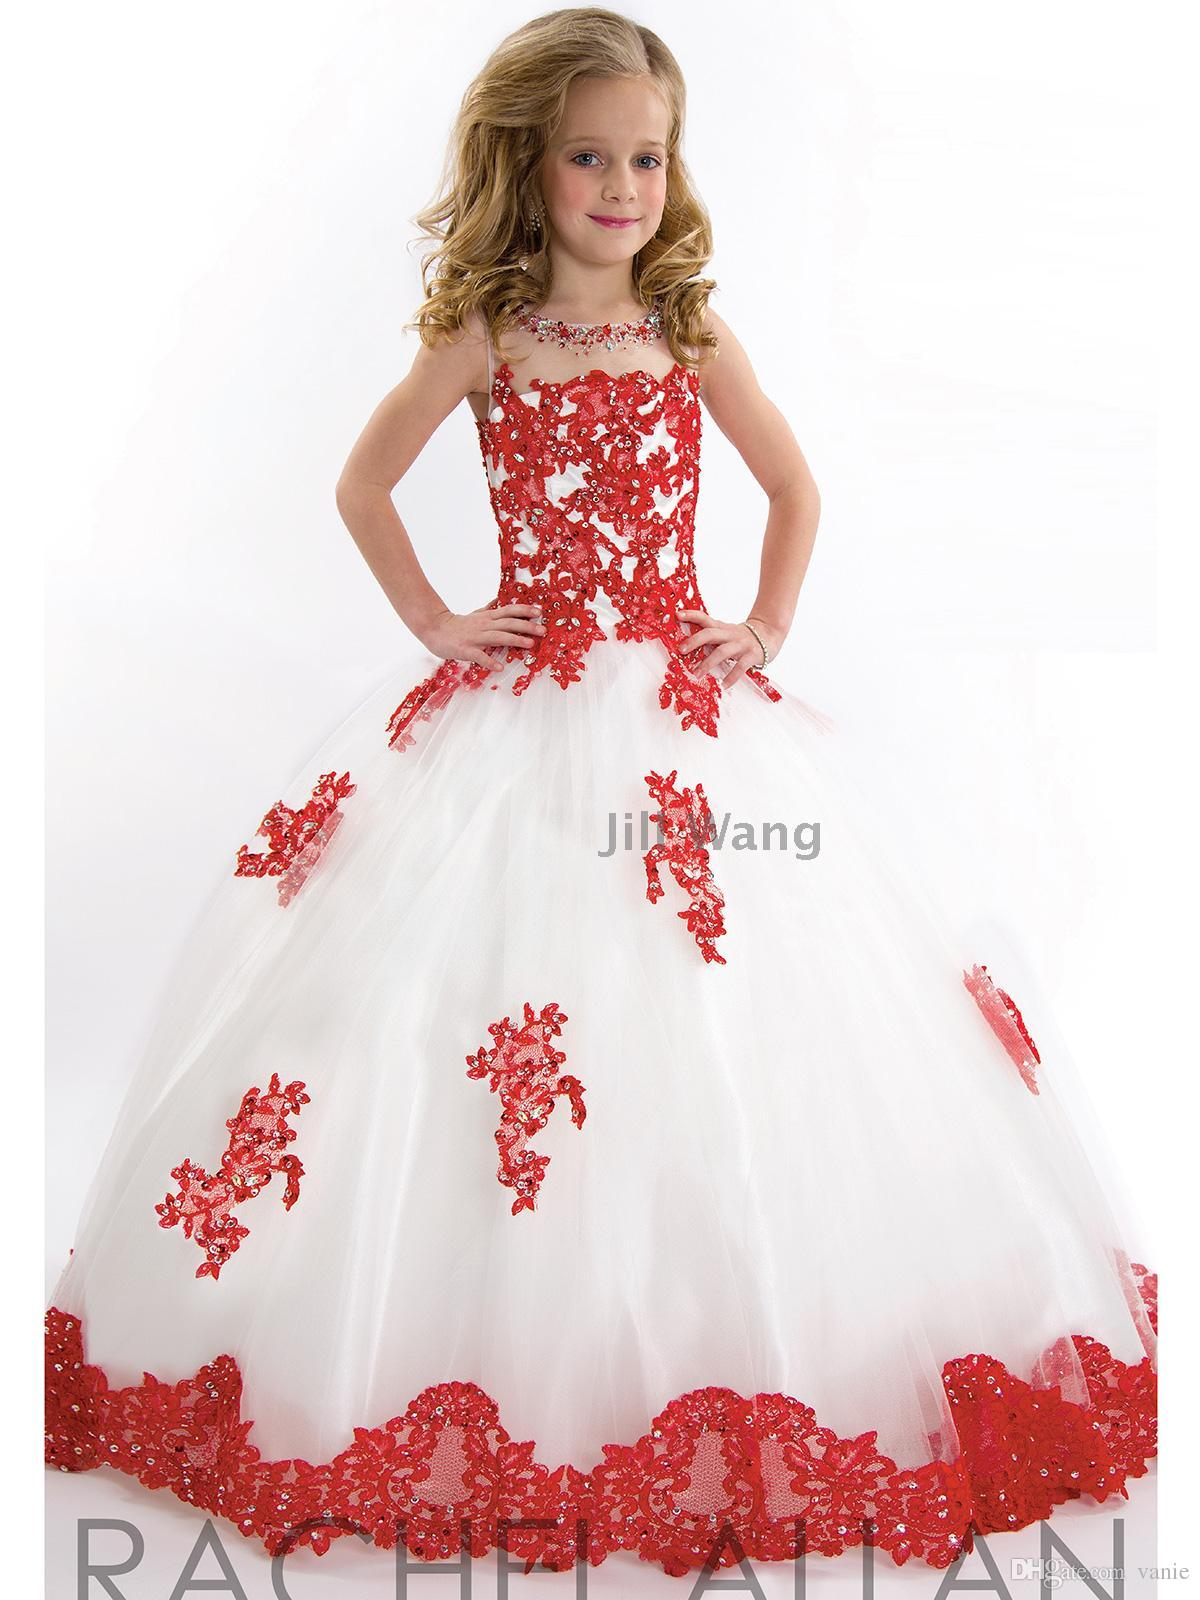 21 2018 Princess Flower Girl Dresses For Weddings Girls White Red